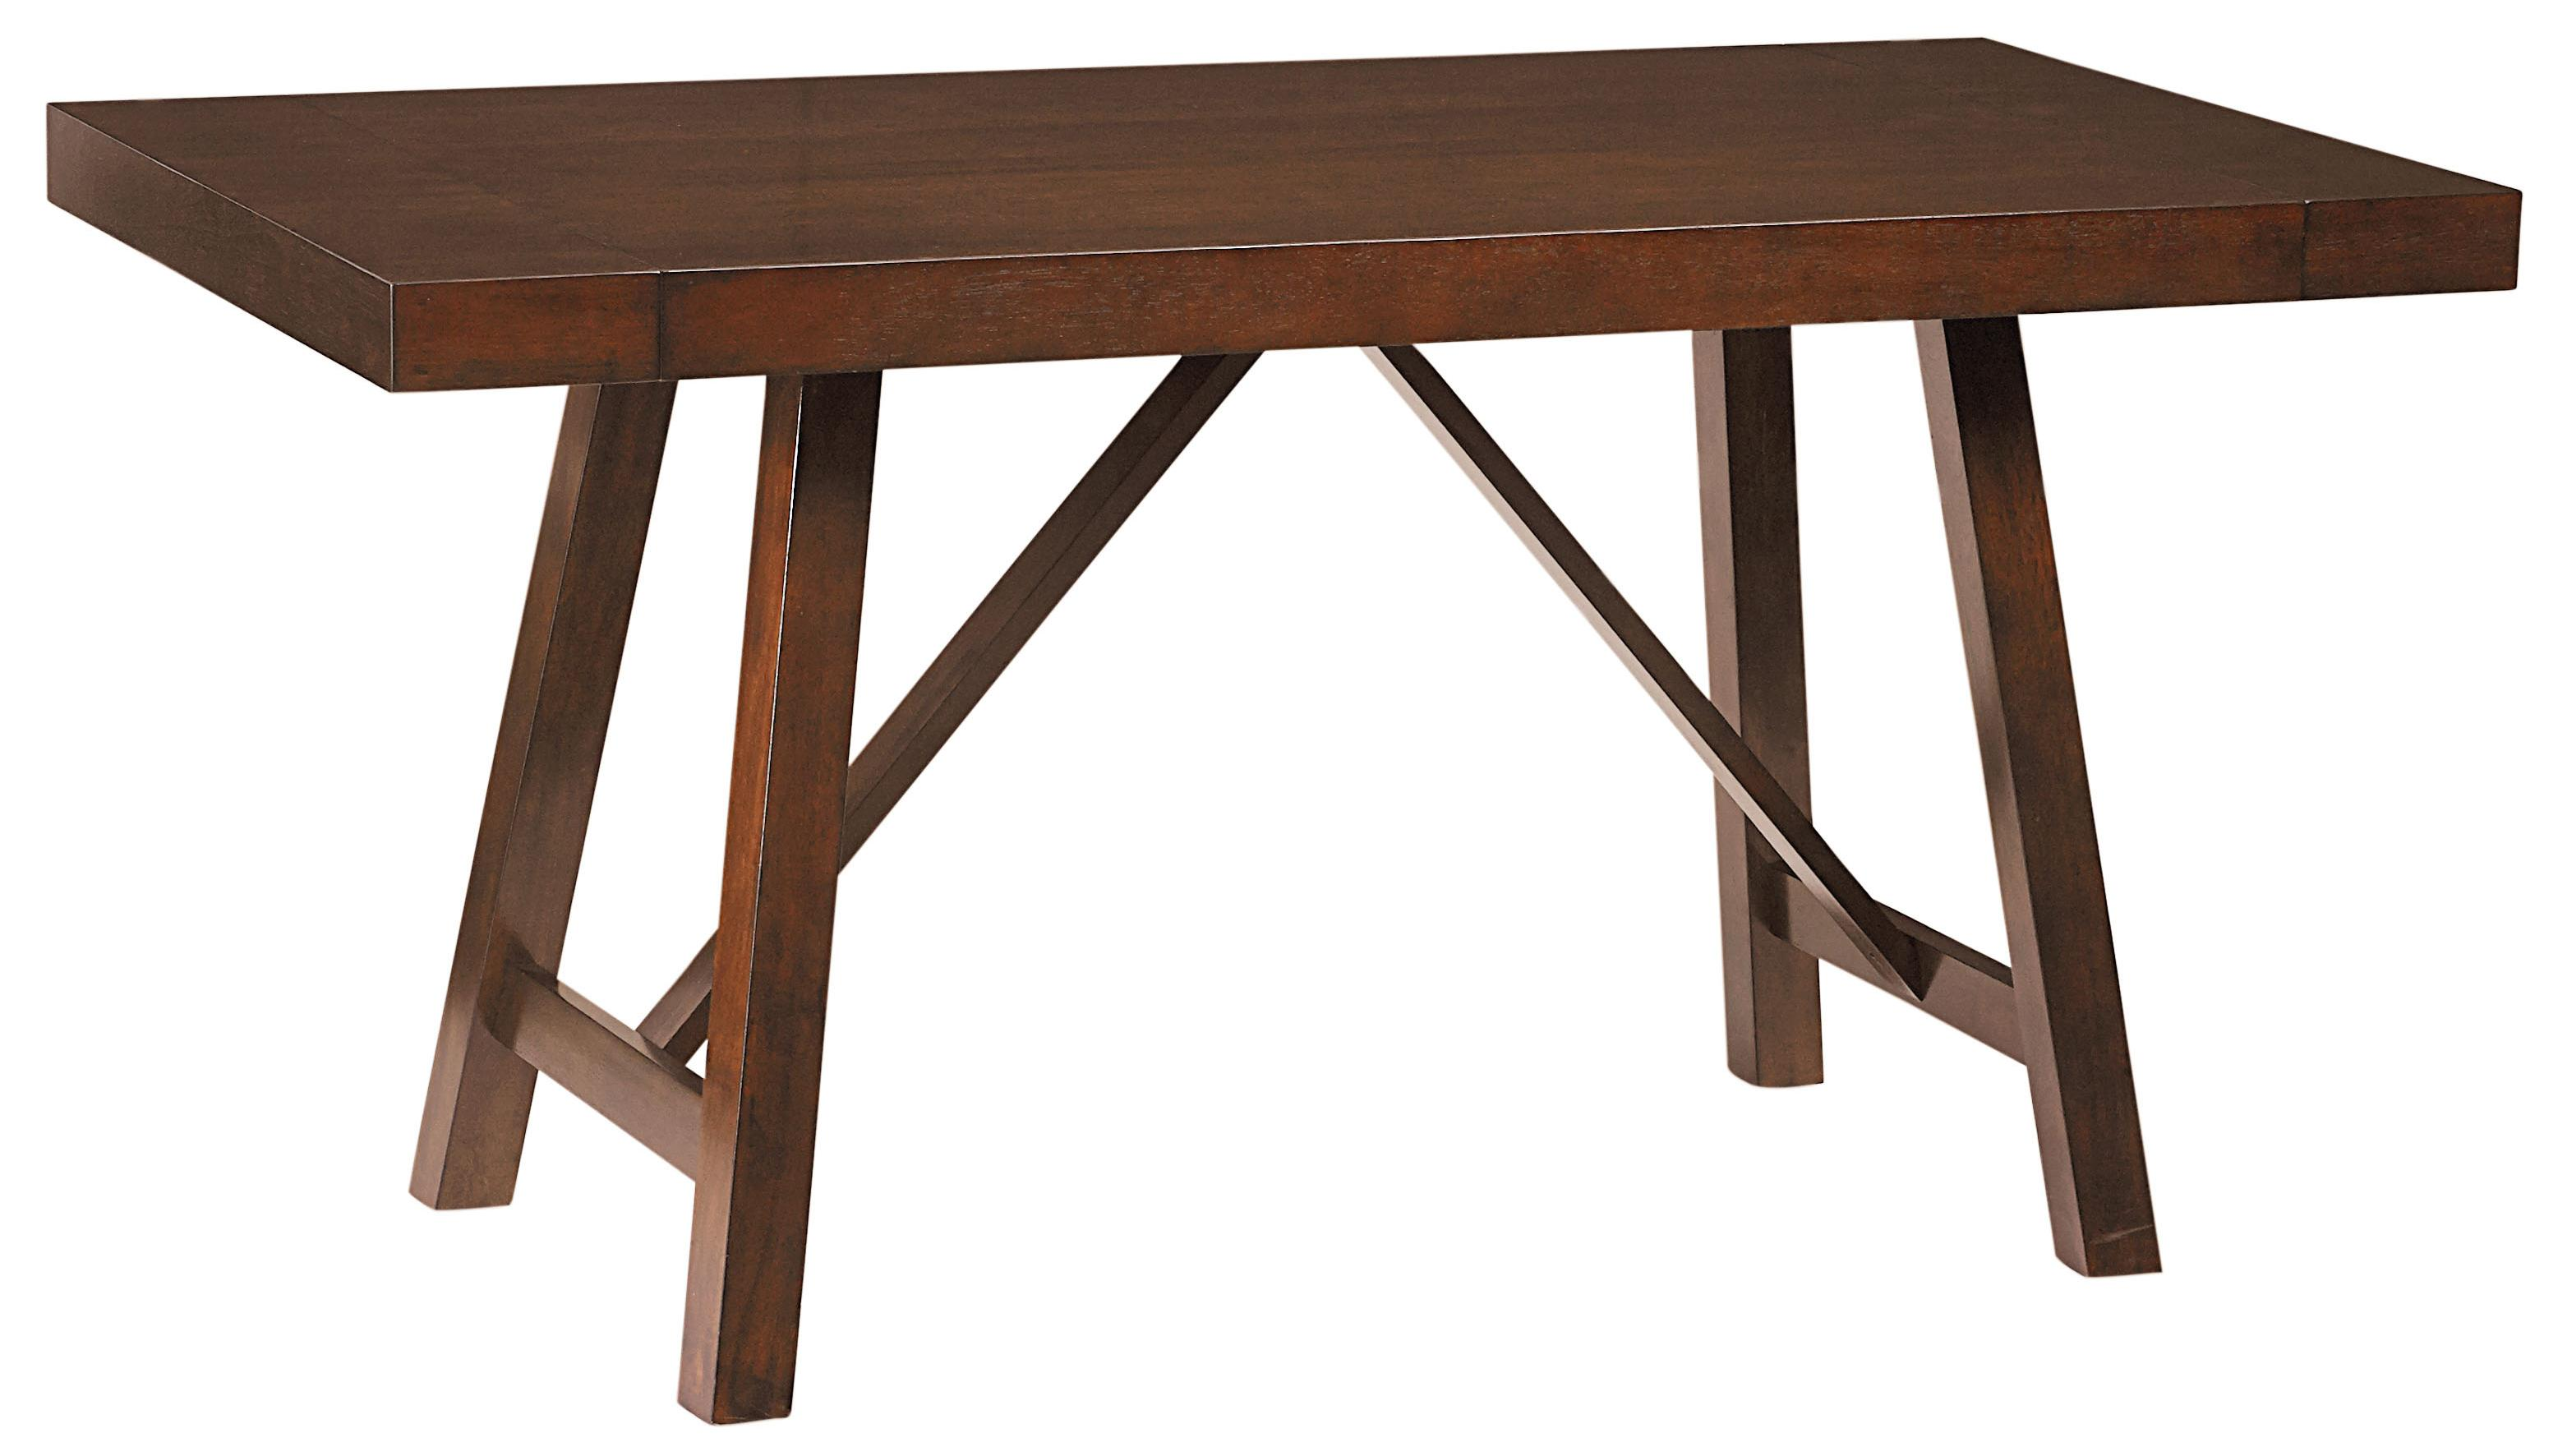 Standard furniture omaha brown 16196 counter height for Table with that left